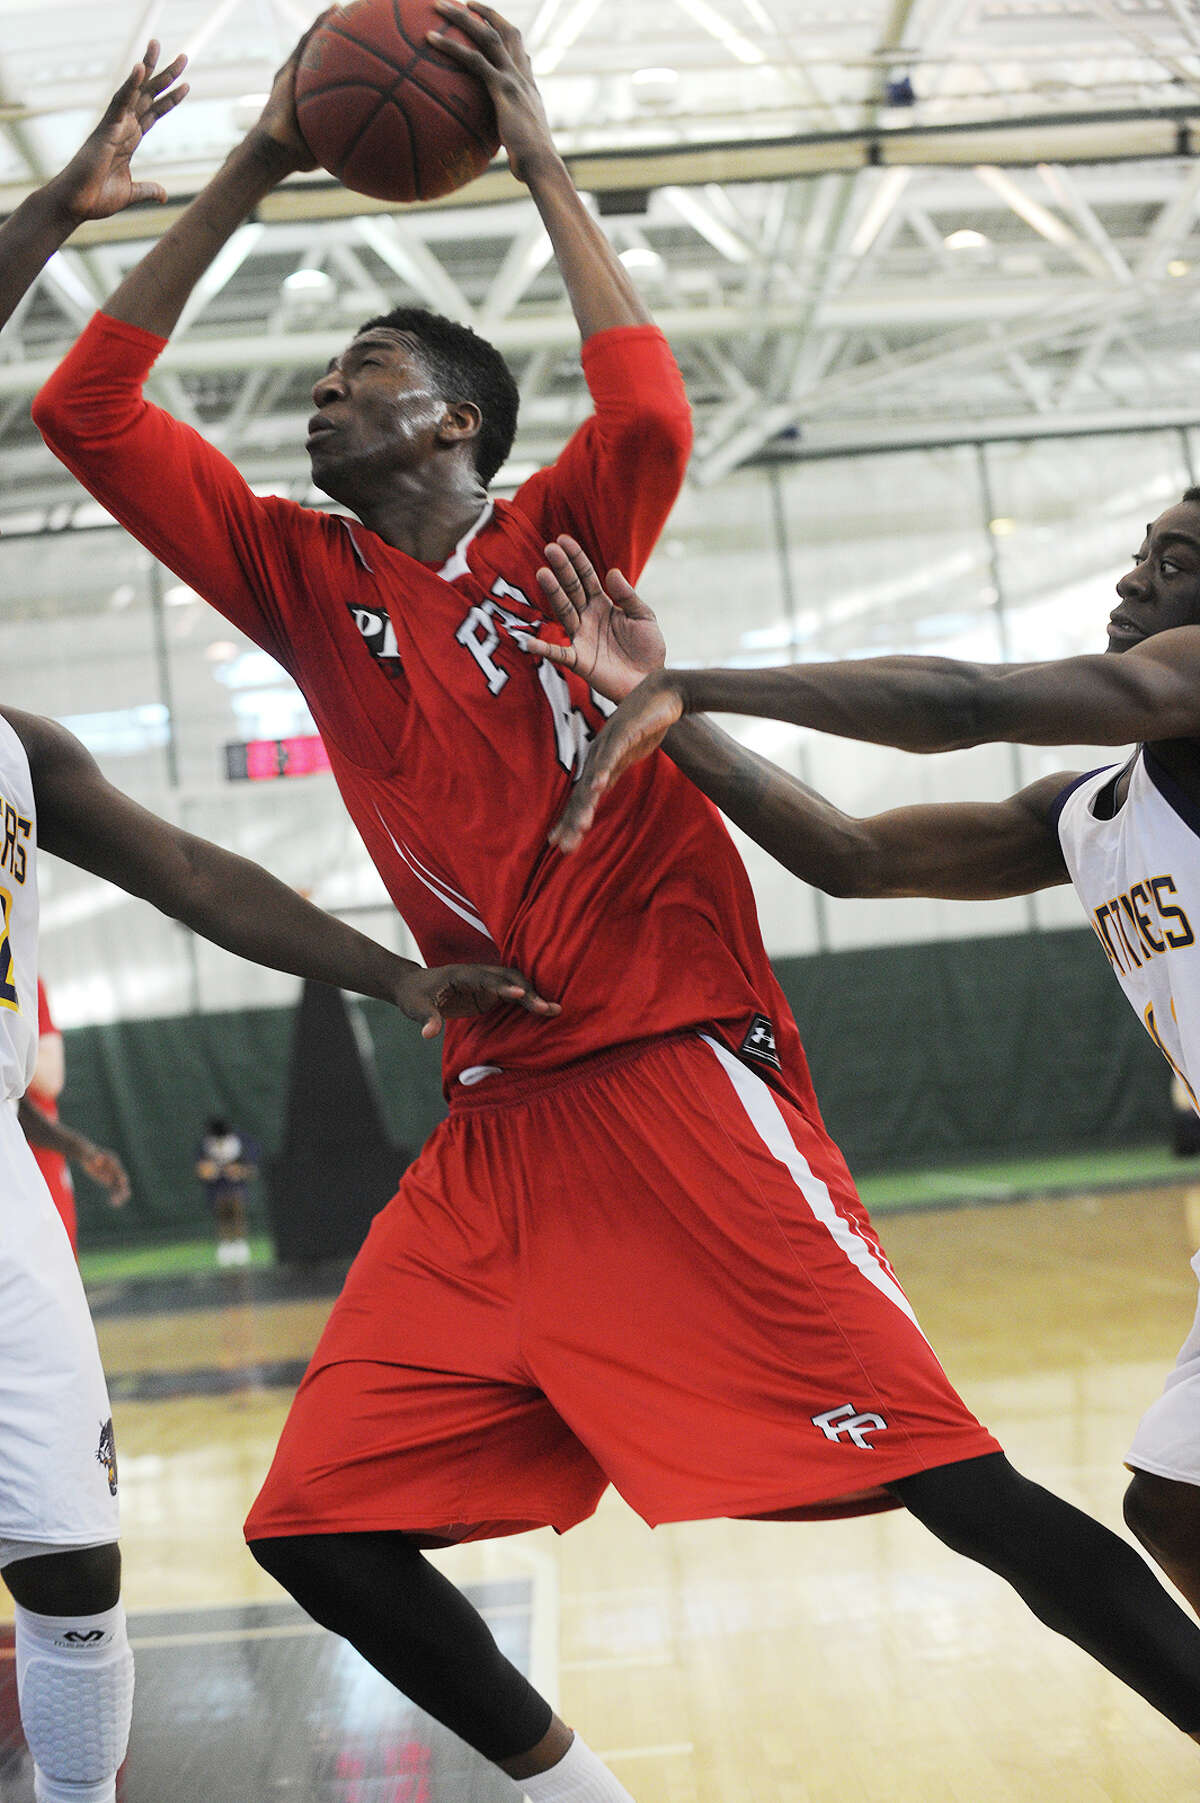 Fairfield Prep's Paschal Chukwu drives to the basket against two Career High School defenders during the Jesuits' boys basketball matchup at the Floyd Little Athletic Center in New Haven, Conn. on Sunday, January 19, 2014.